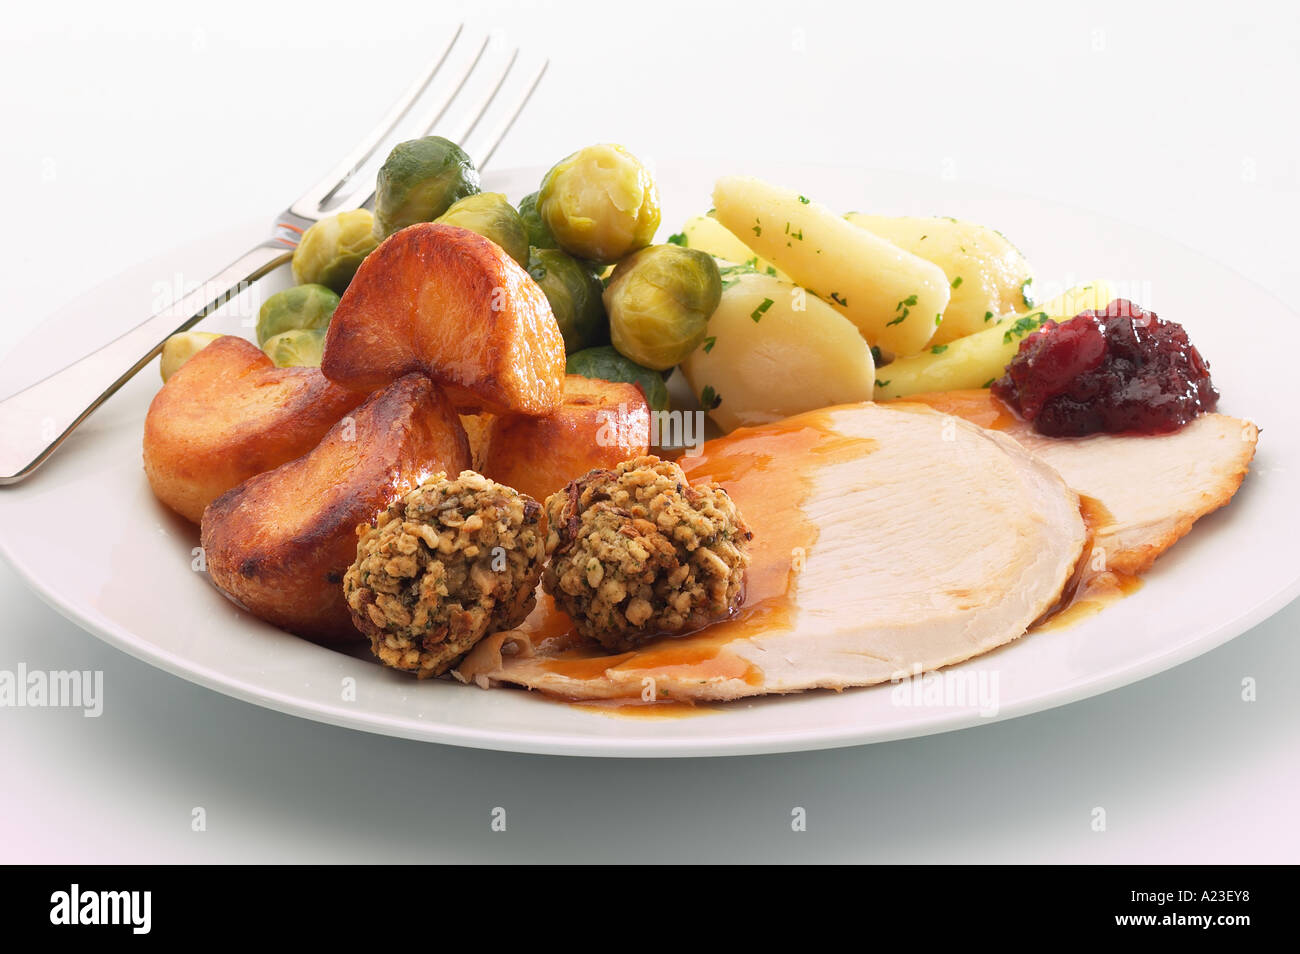 hight resolution of plate of christmas dinner with turkey stuffing roast potatoes sprouts gravy and cranberry sauce